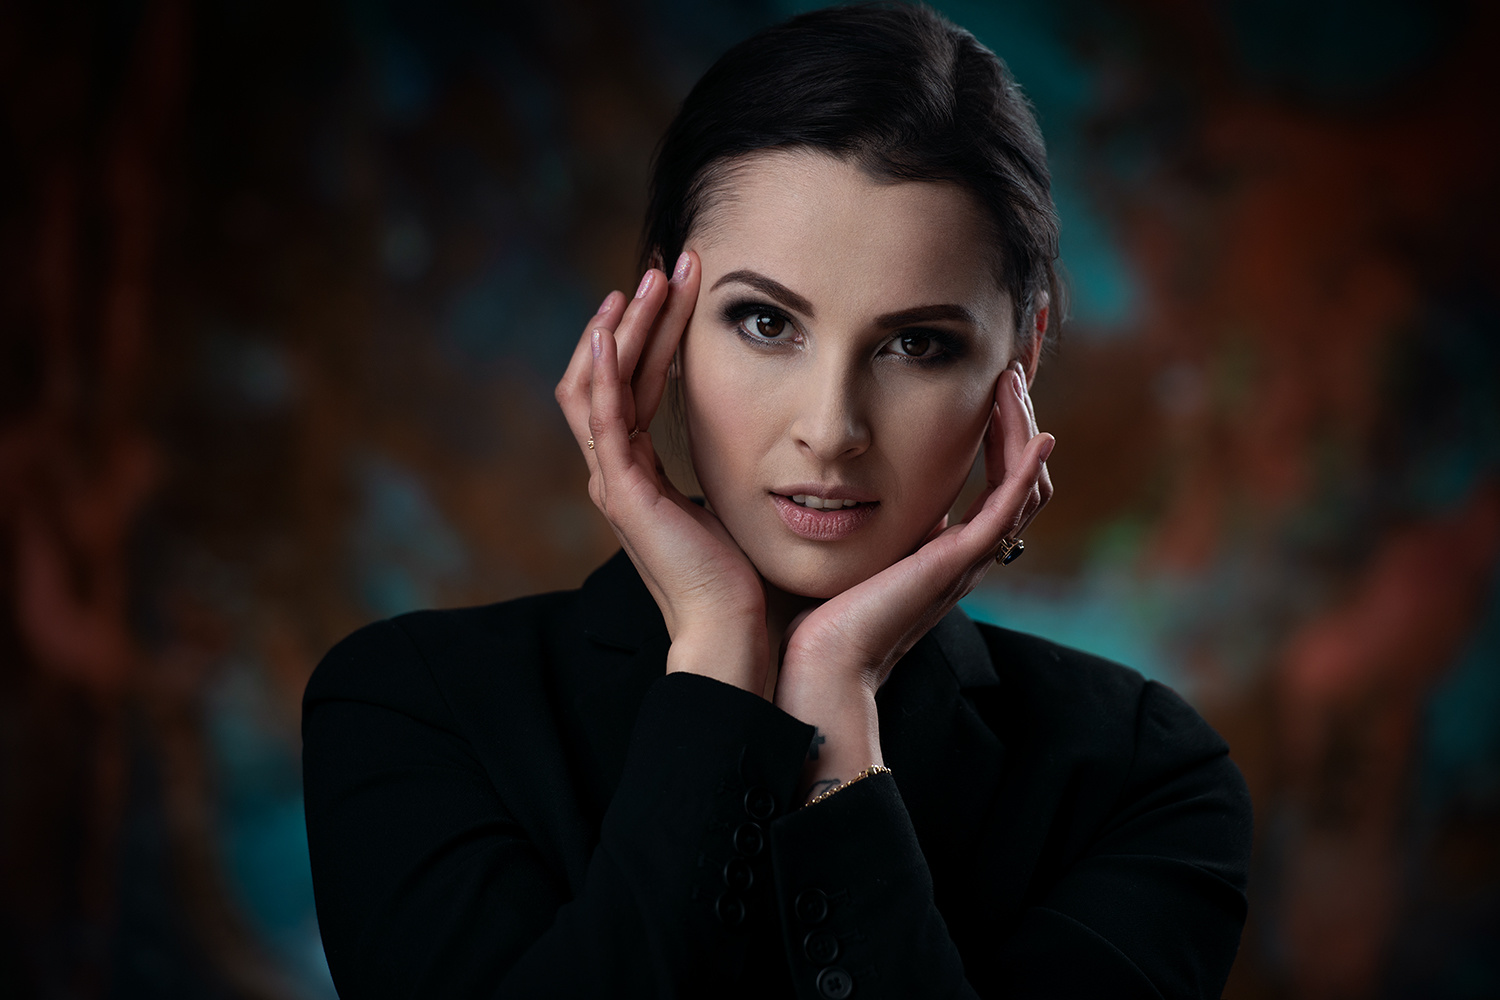 Mildred by Rafal Wegiel